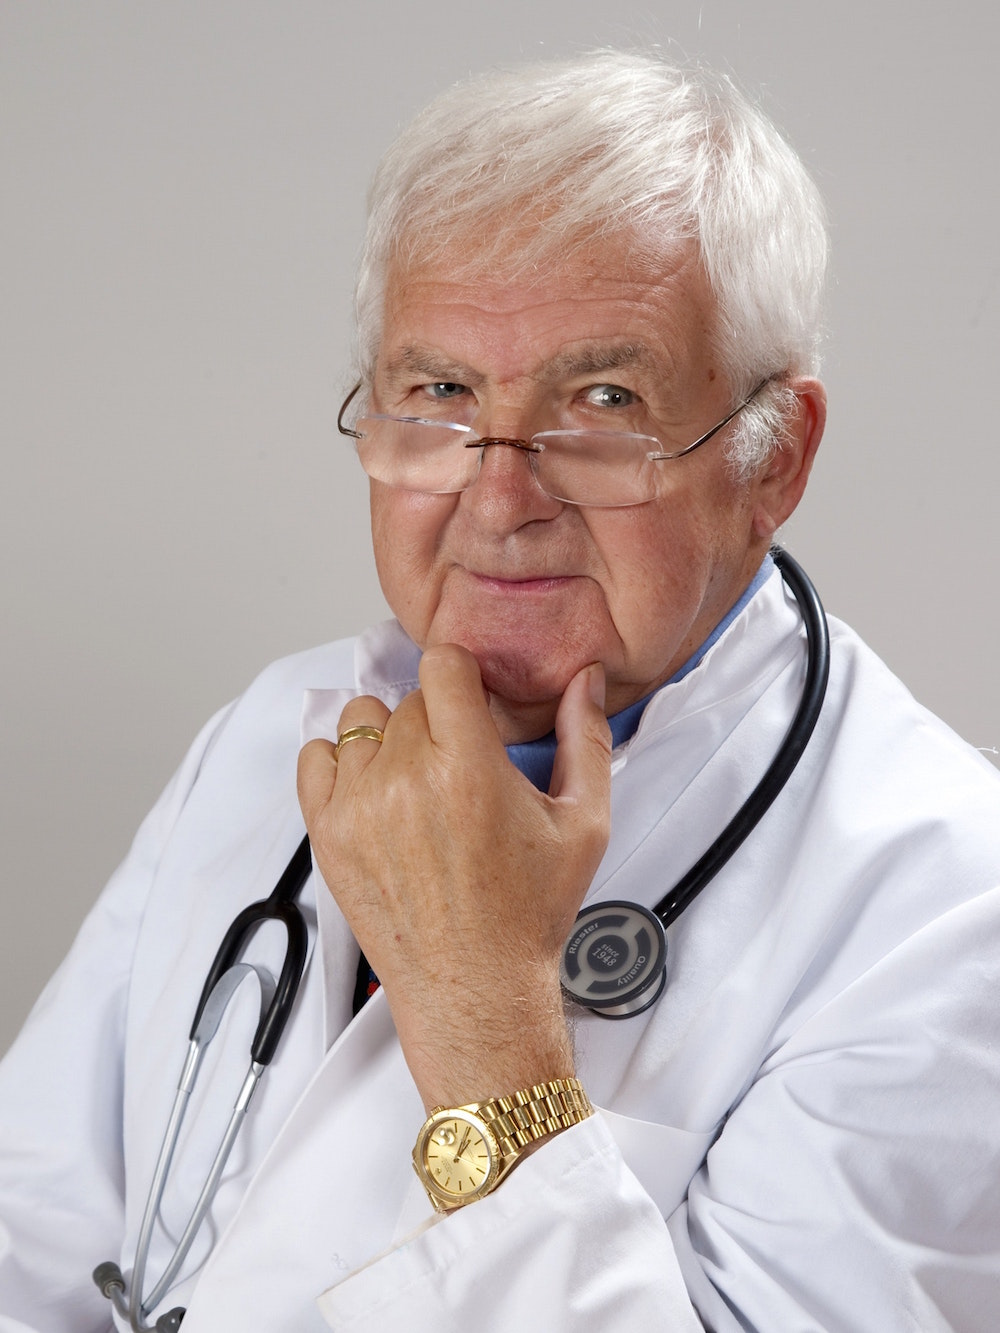 Concierge Medicine Pros and Cons